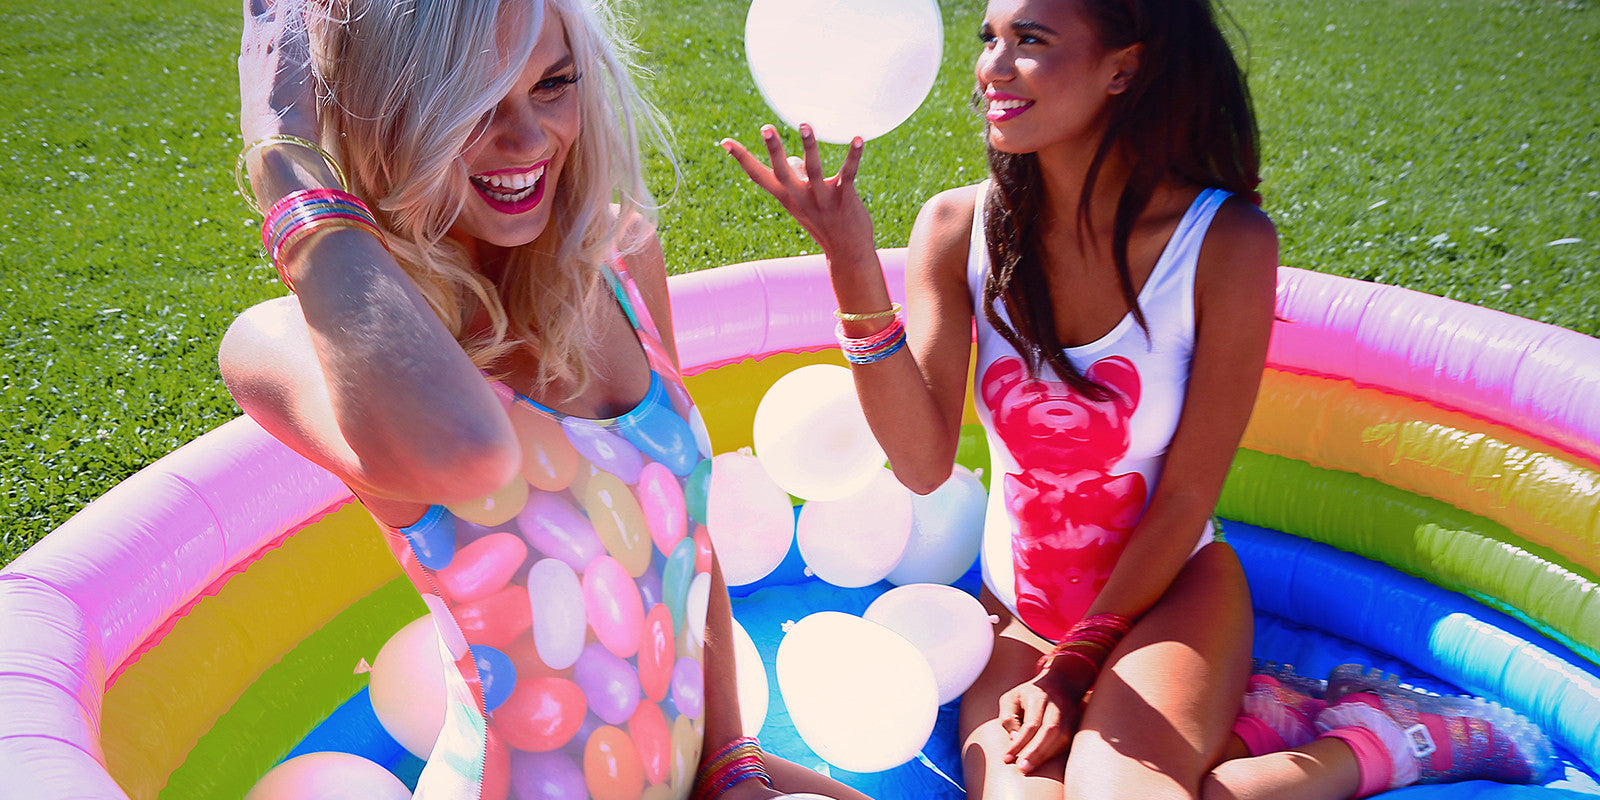 Jelly Bean And Gummy Bear One-Piece Swimsuits